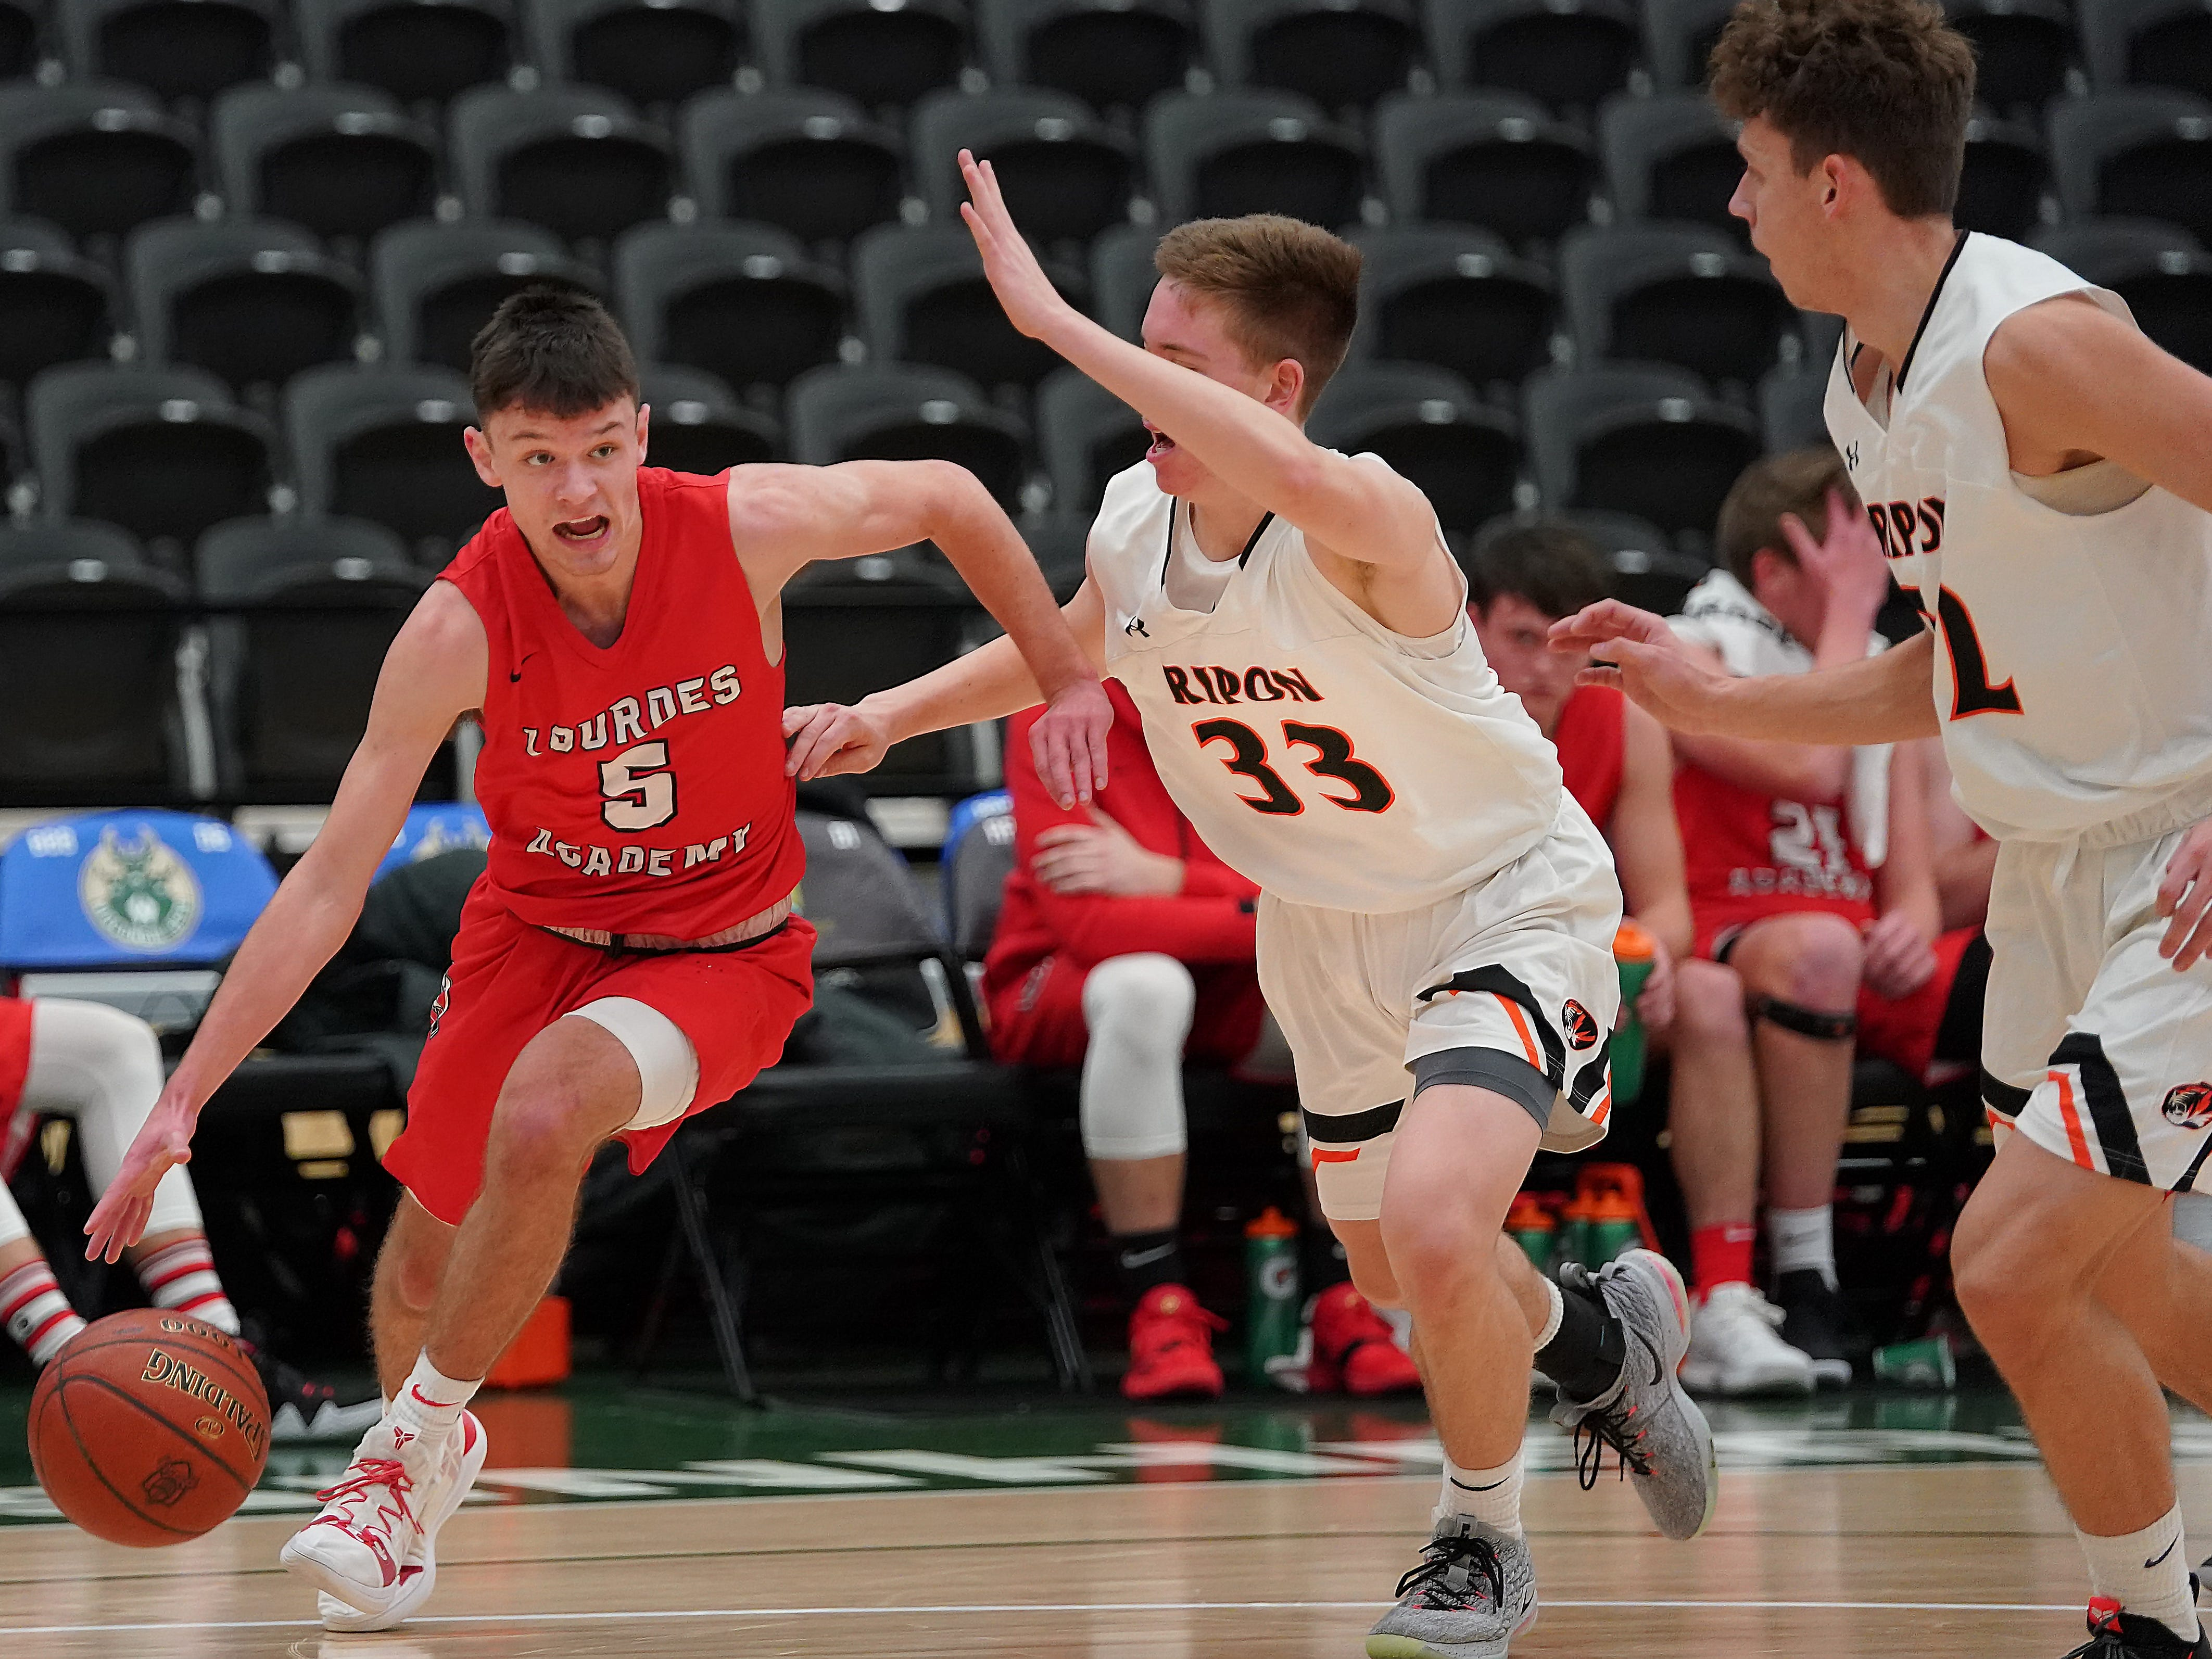 Jack McKellips (5) of Lourdes drives past Garrett Jennings (33) of Ripon. The Lourdes Knights and Ripon Tigers met in a nonconference basketball game Saturday afternoon, December 29, 2018 at the Menomonie Nation Arena in Oshkosh.